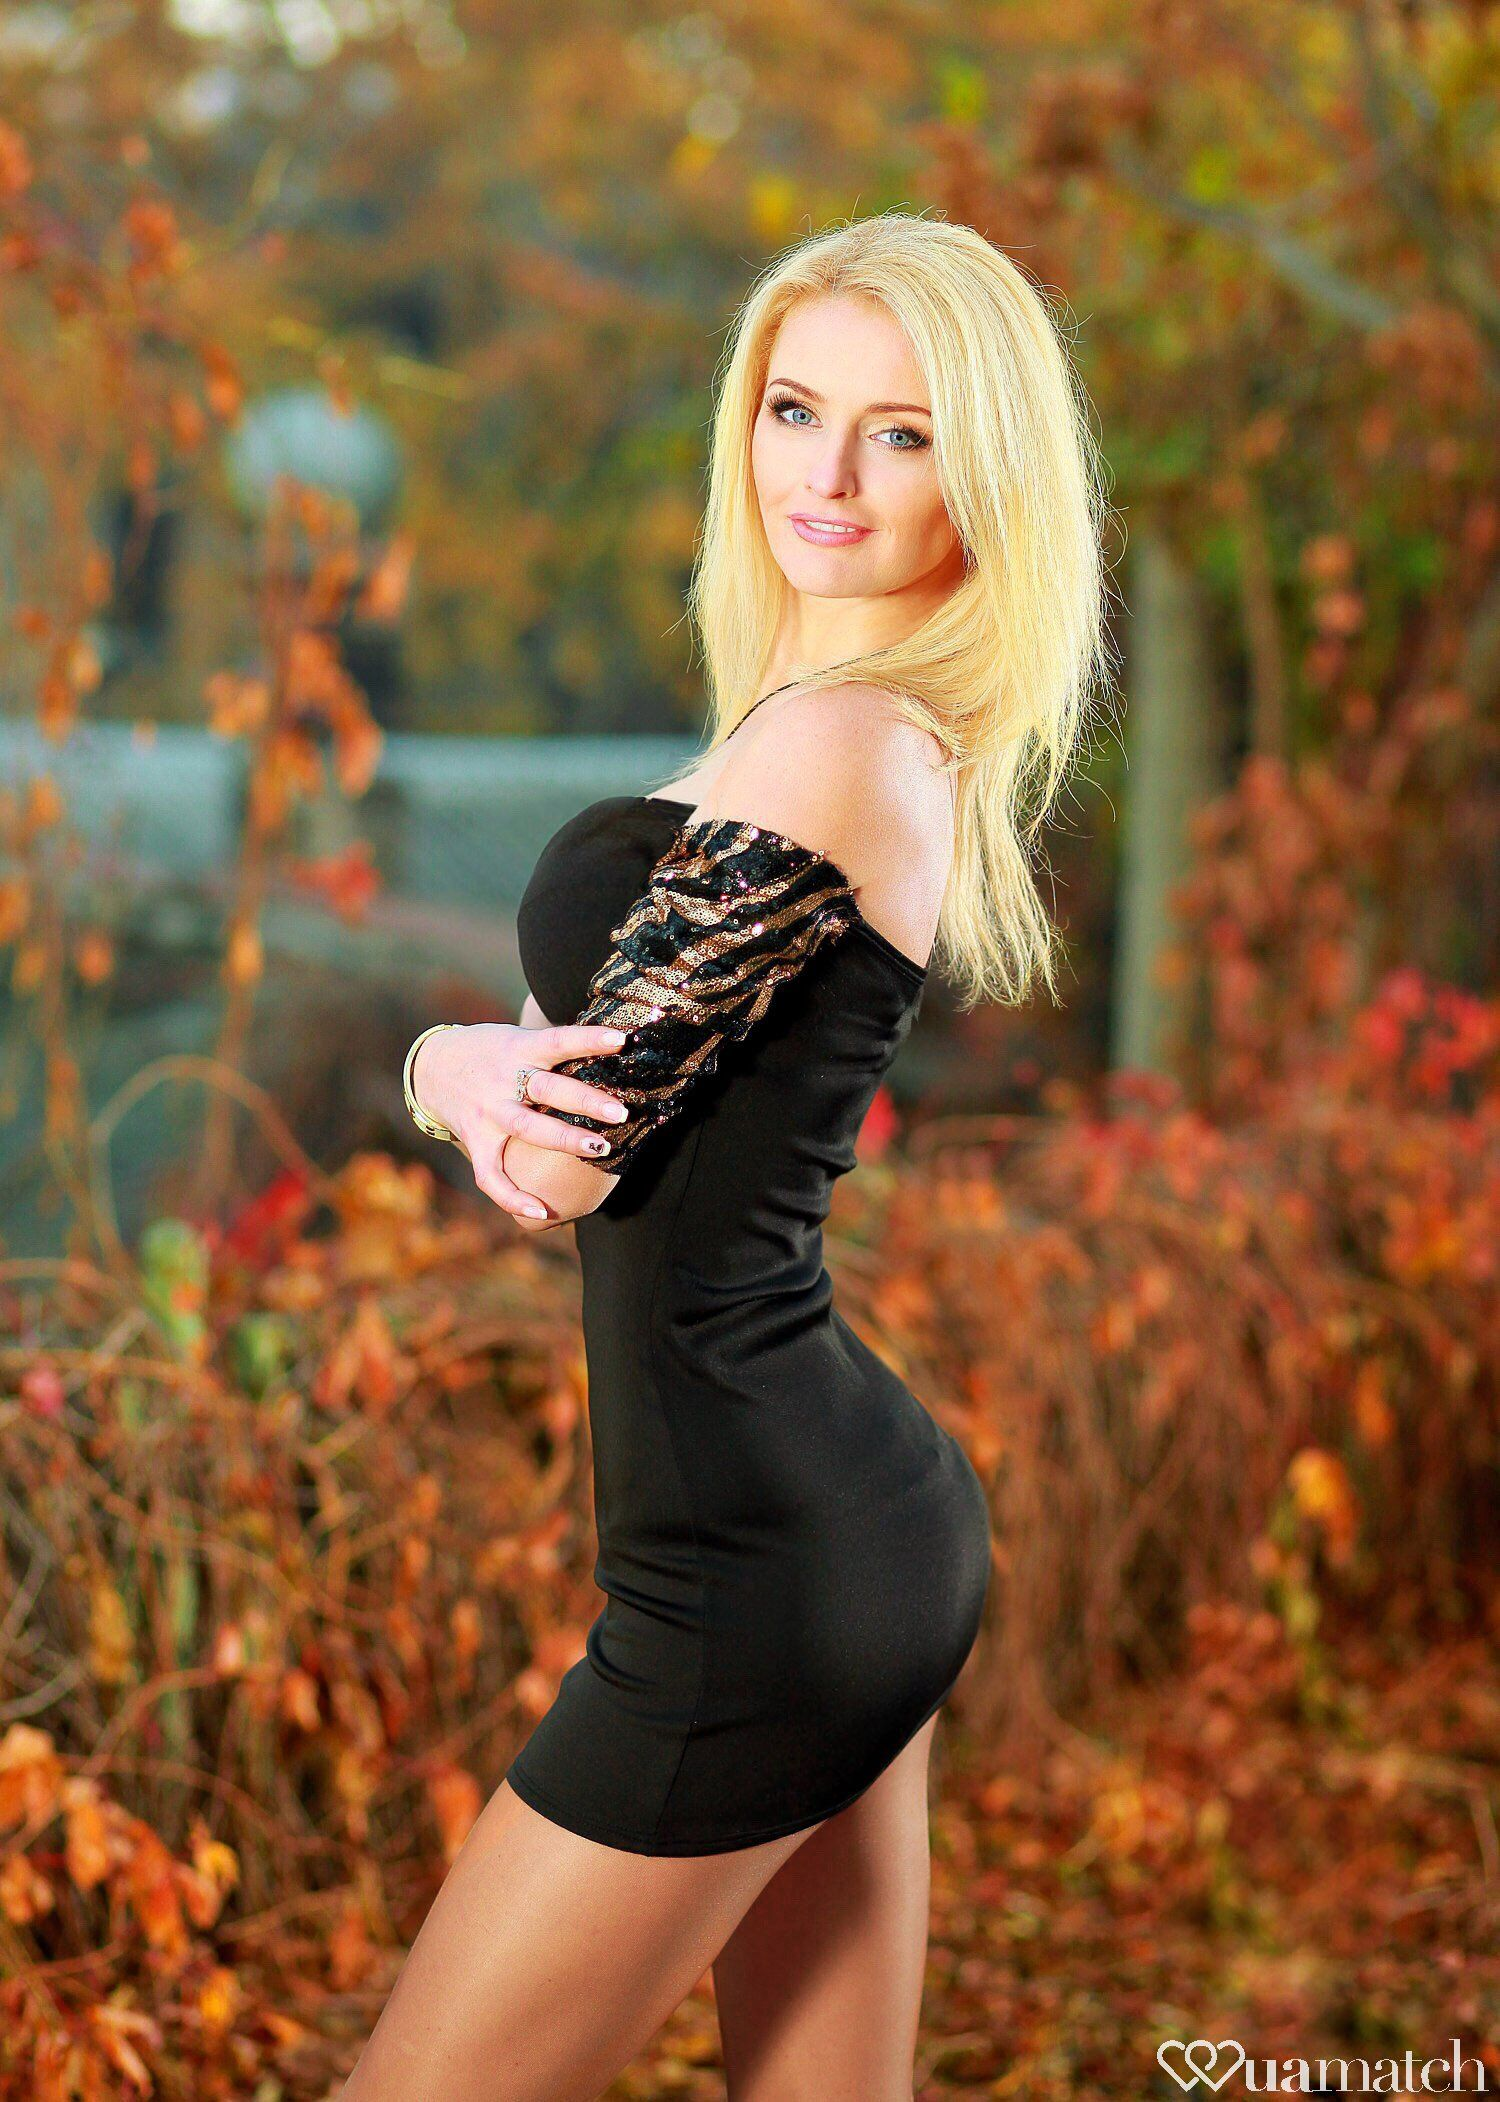 Proposed guidance value in bangalore dating